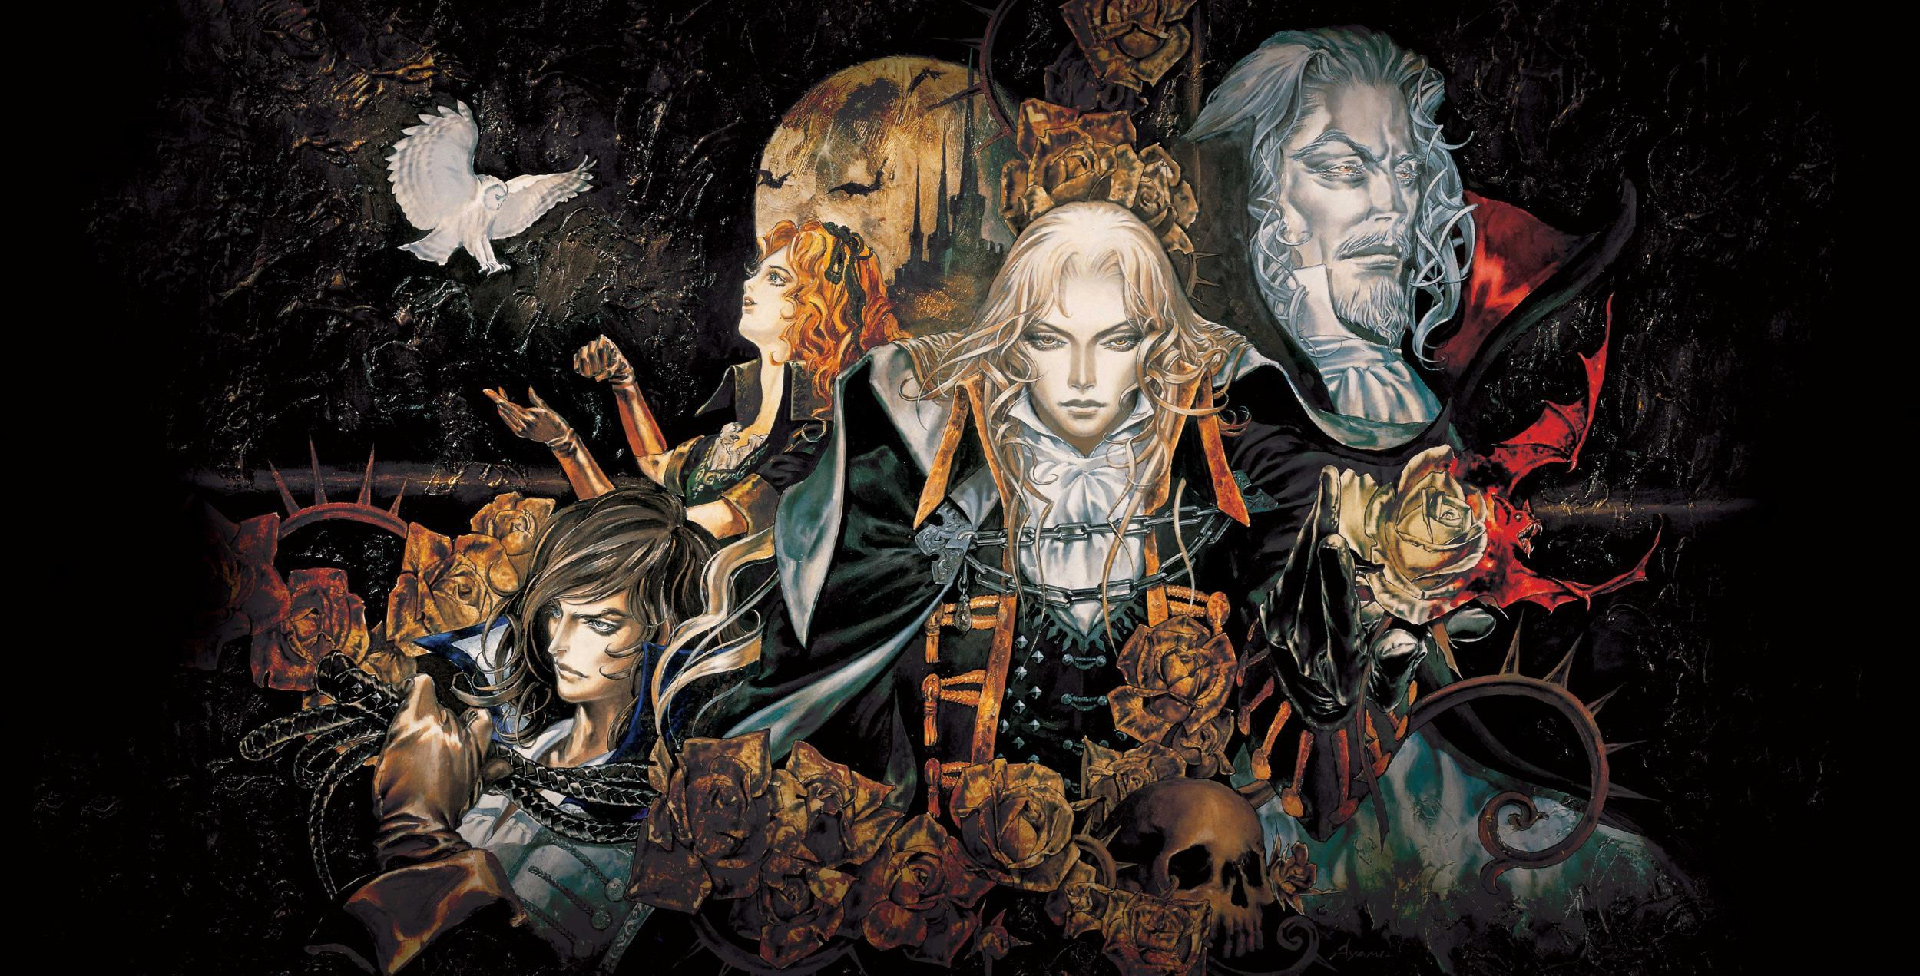 I sure hope Castlevania Anniversary Collection lives up to its name screenshot